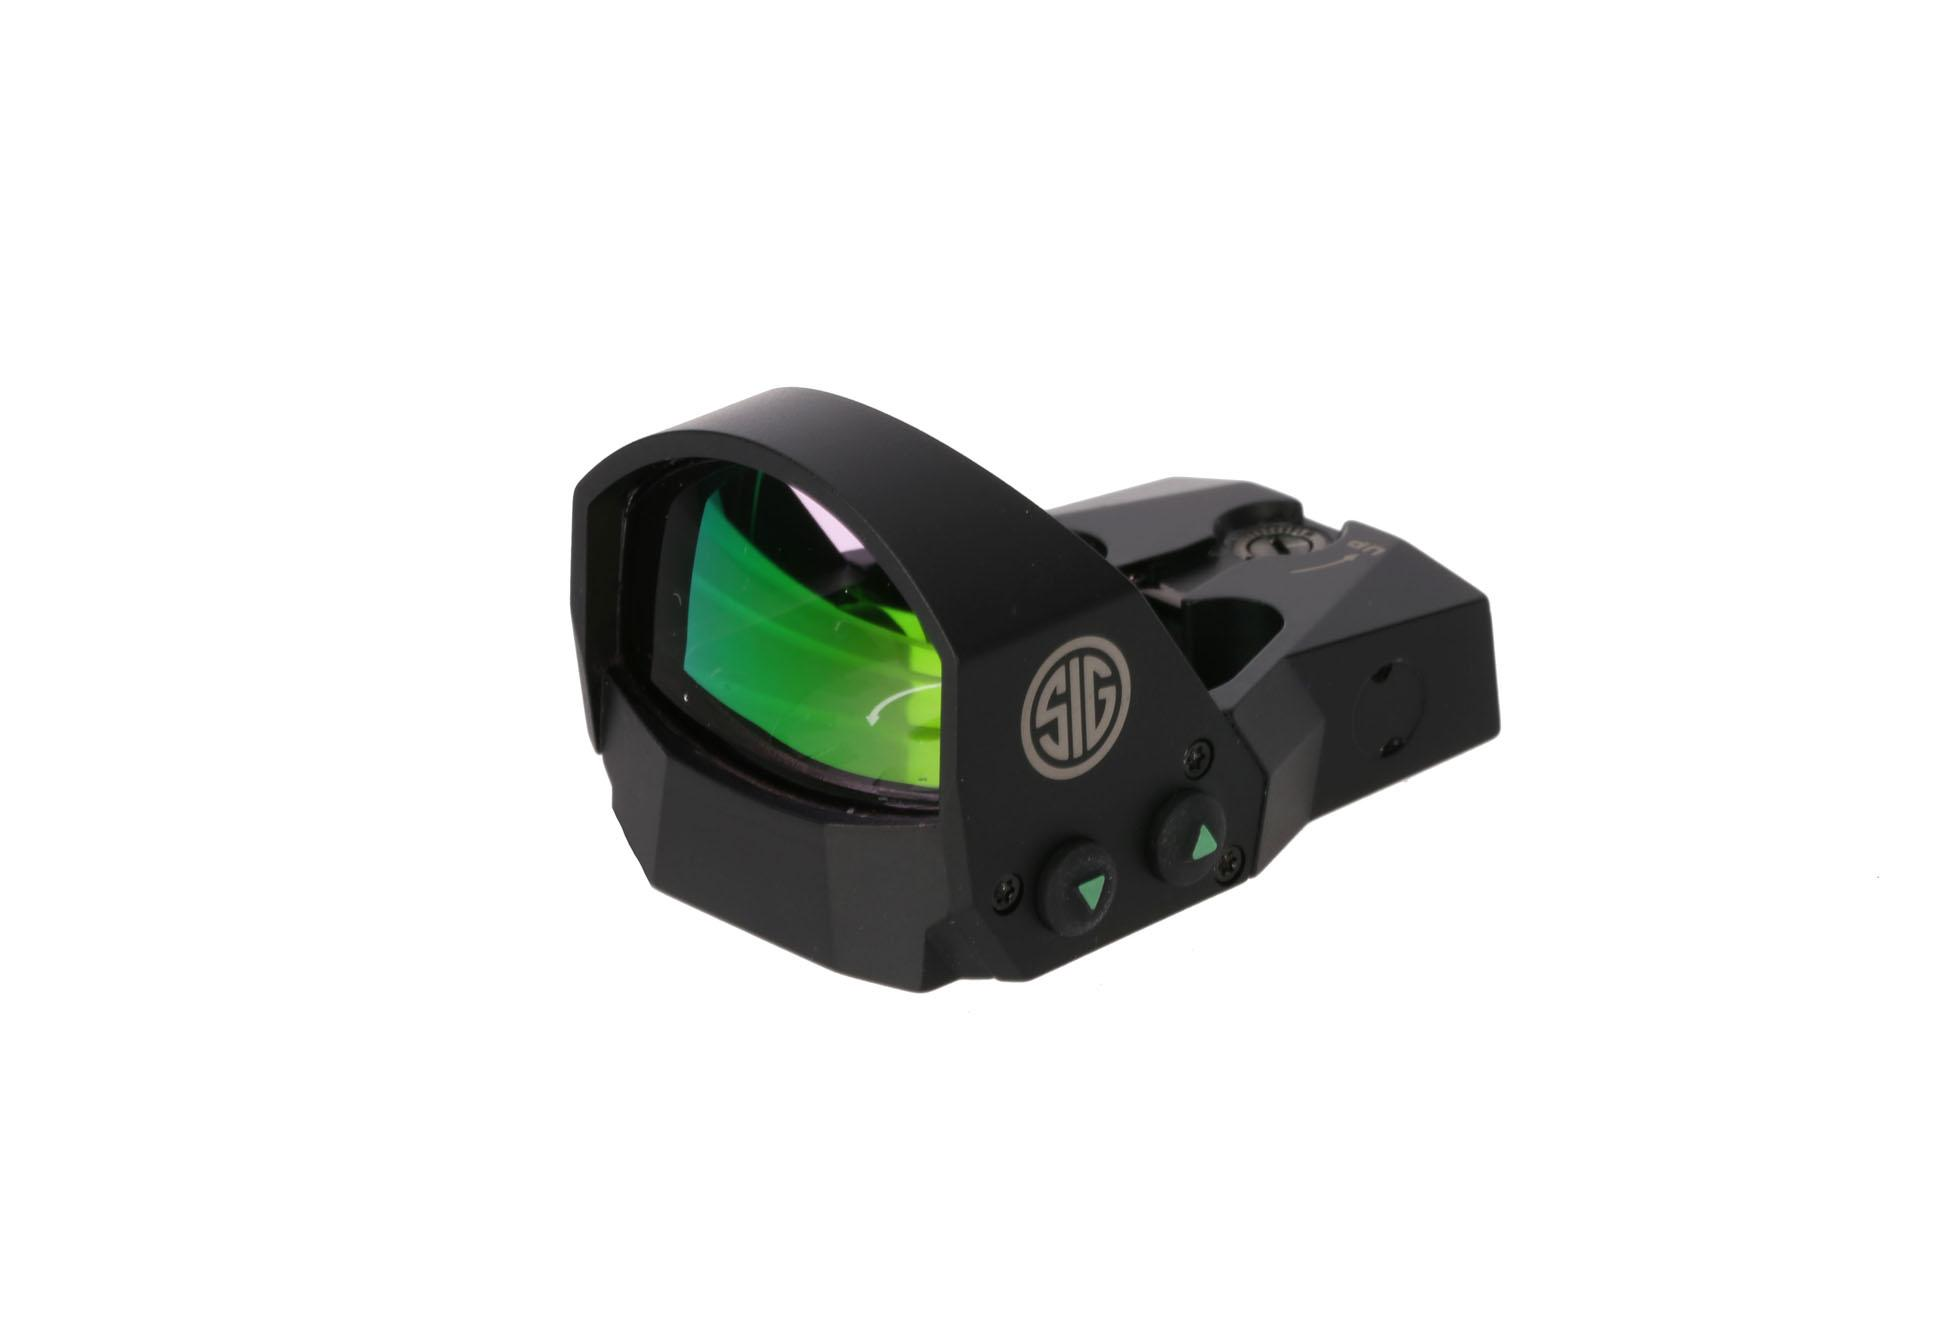 The sig sauer reflex sight is night vision compatible